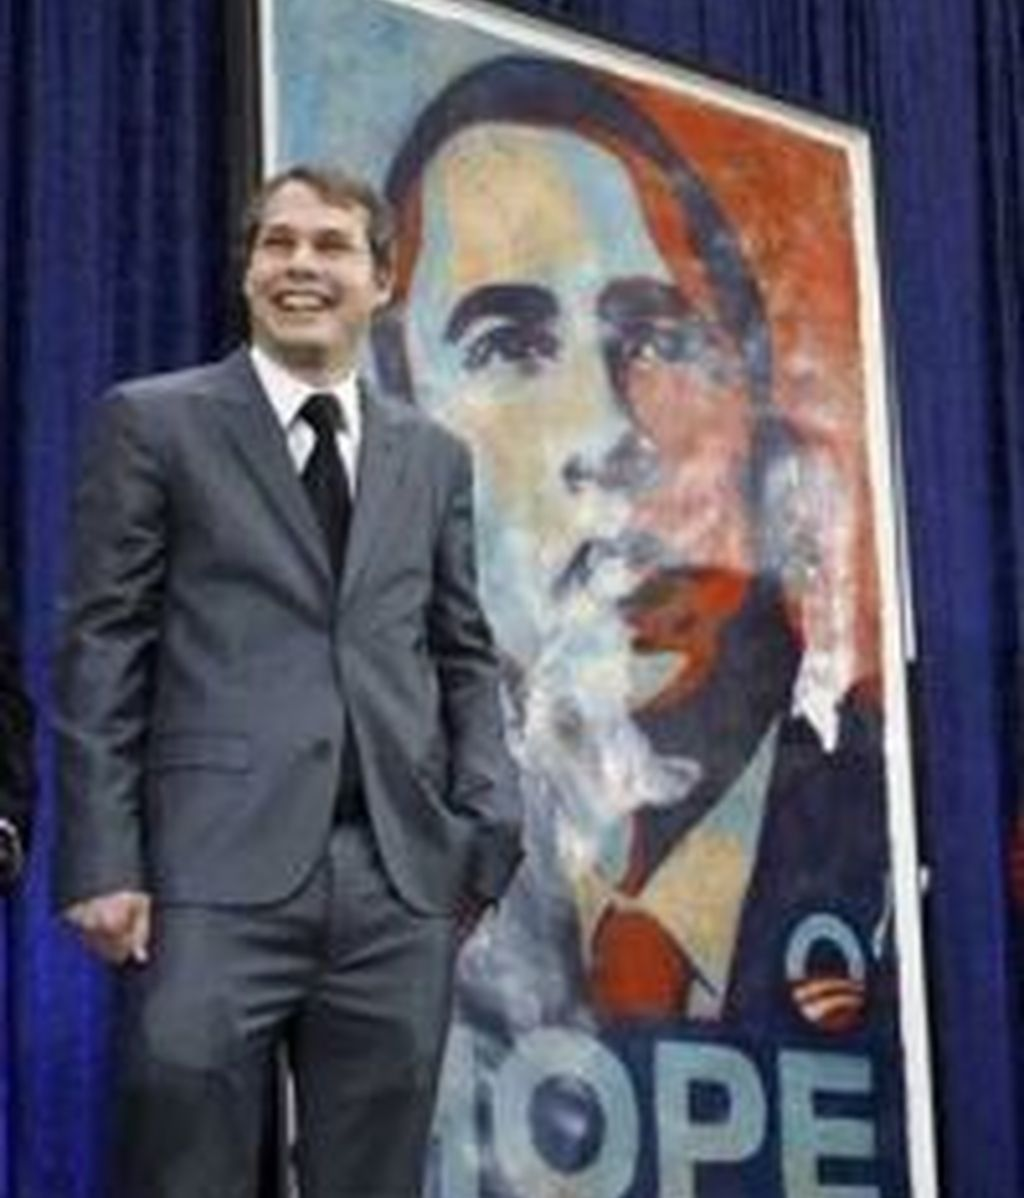 Shepard Fairey posa junto a su retrato de Obama en la National Portrait Gallery de Washington. Foto: AP